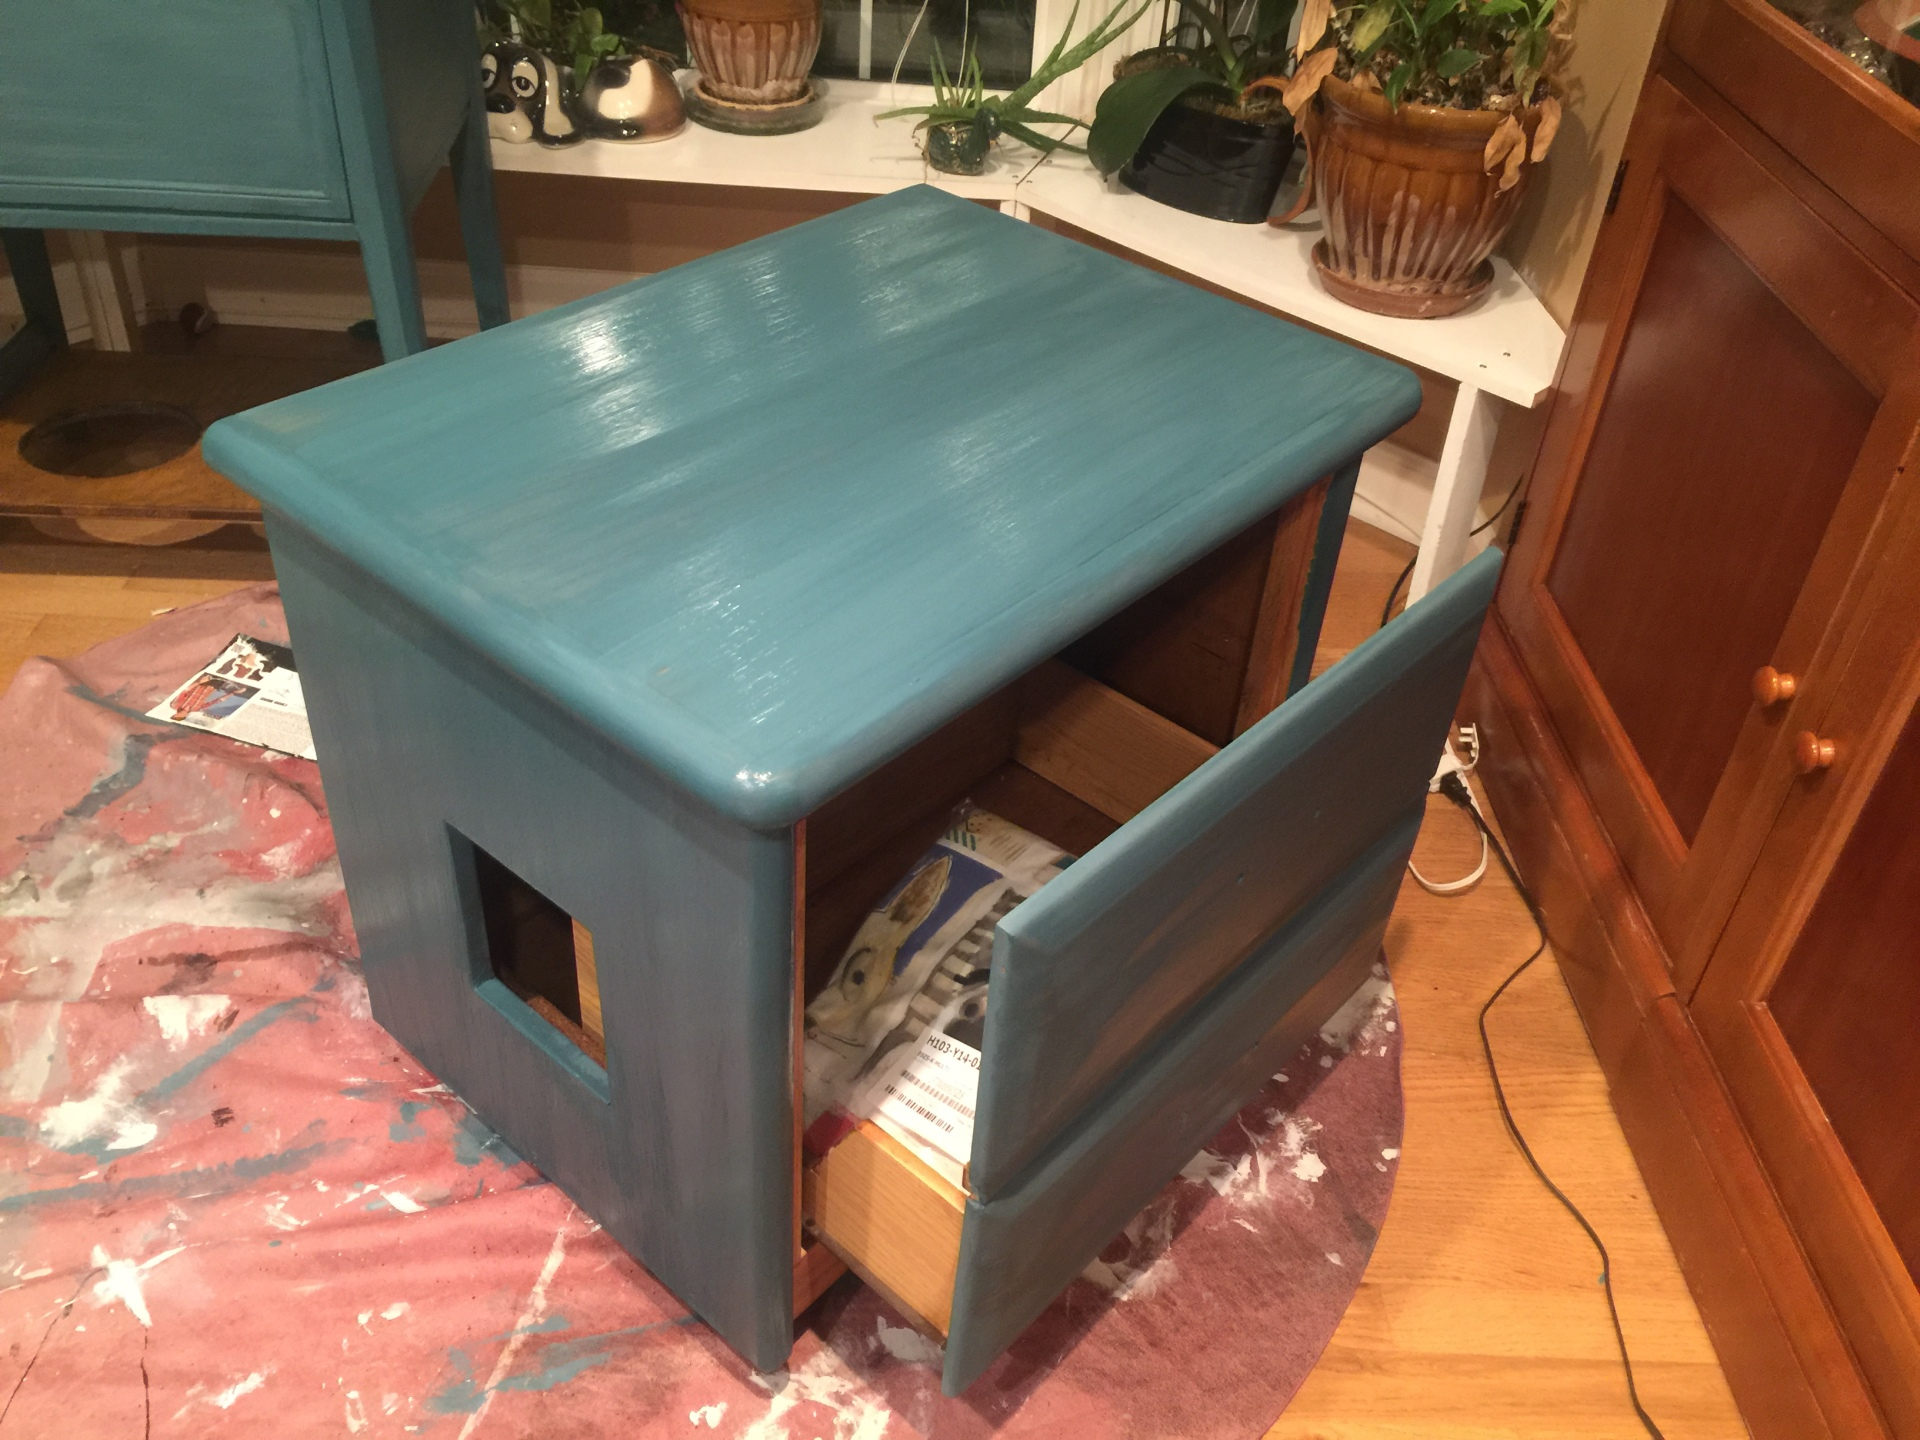 Turquoise $150 Two drawer converted to one for easy scooping